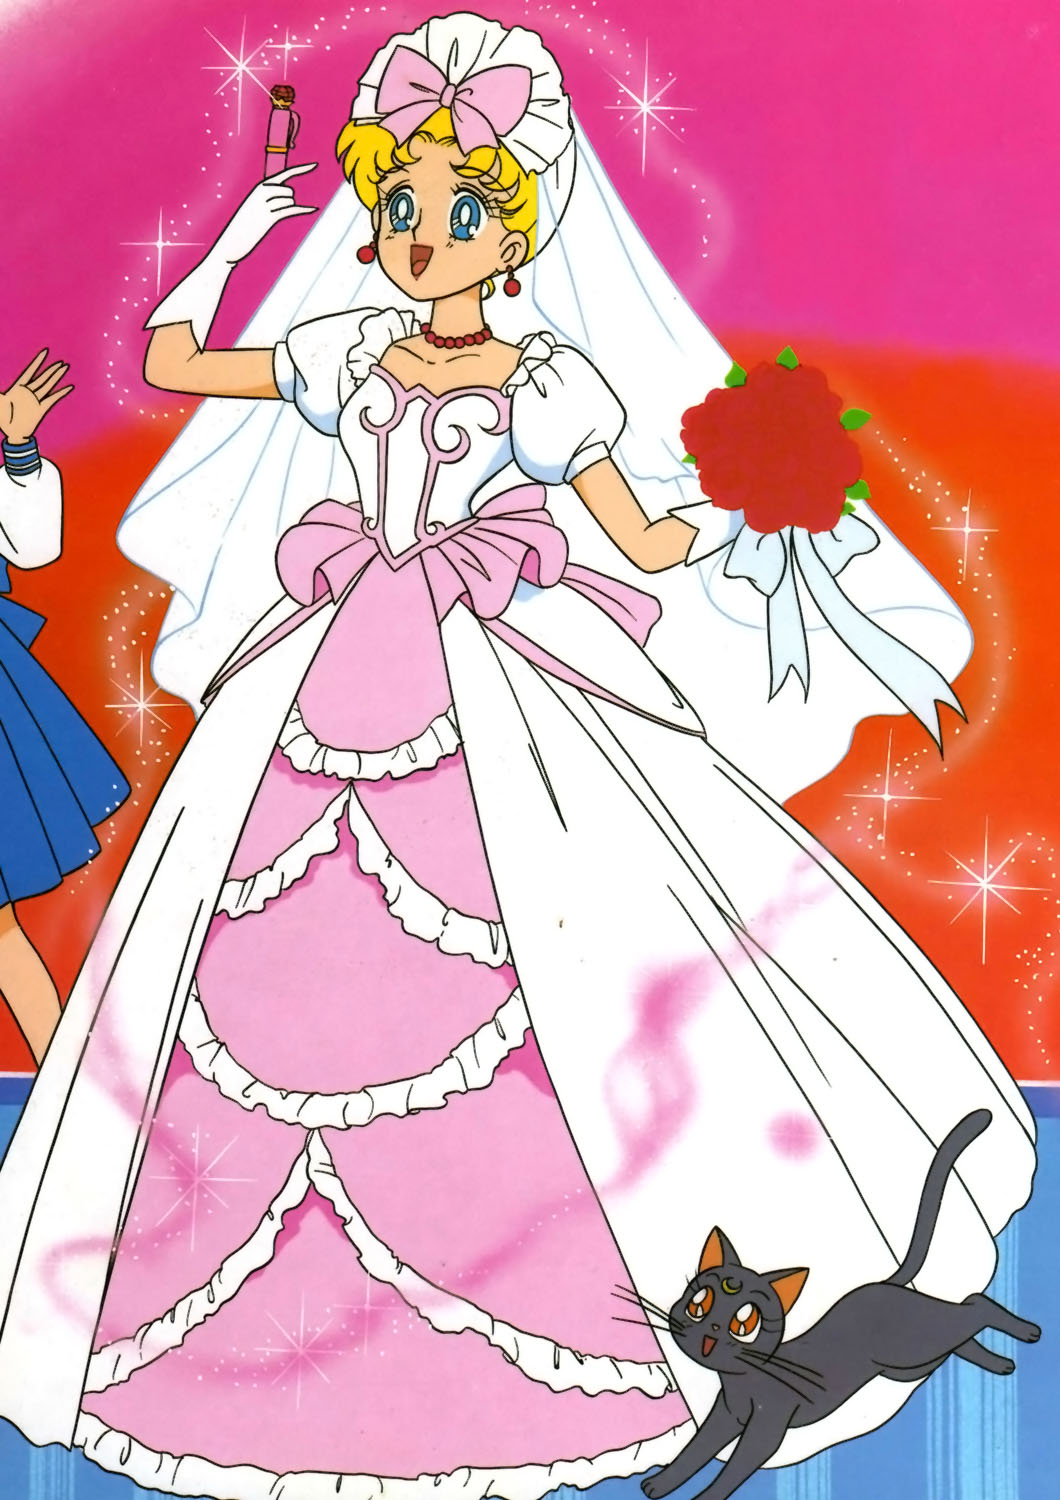 Tsukino Usagi Bishoujo Senshi Sailor Moon Image 452472 Zerochan Anime Image Board,Stylish Wedding Party Wear Dresses For Womens